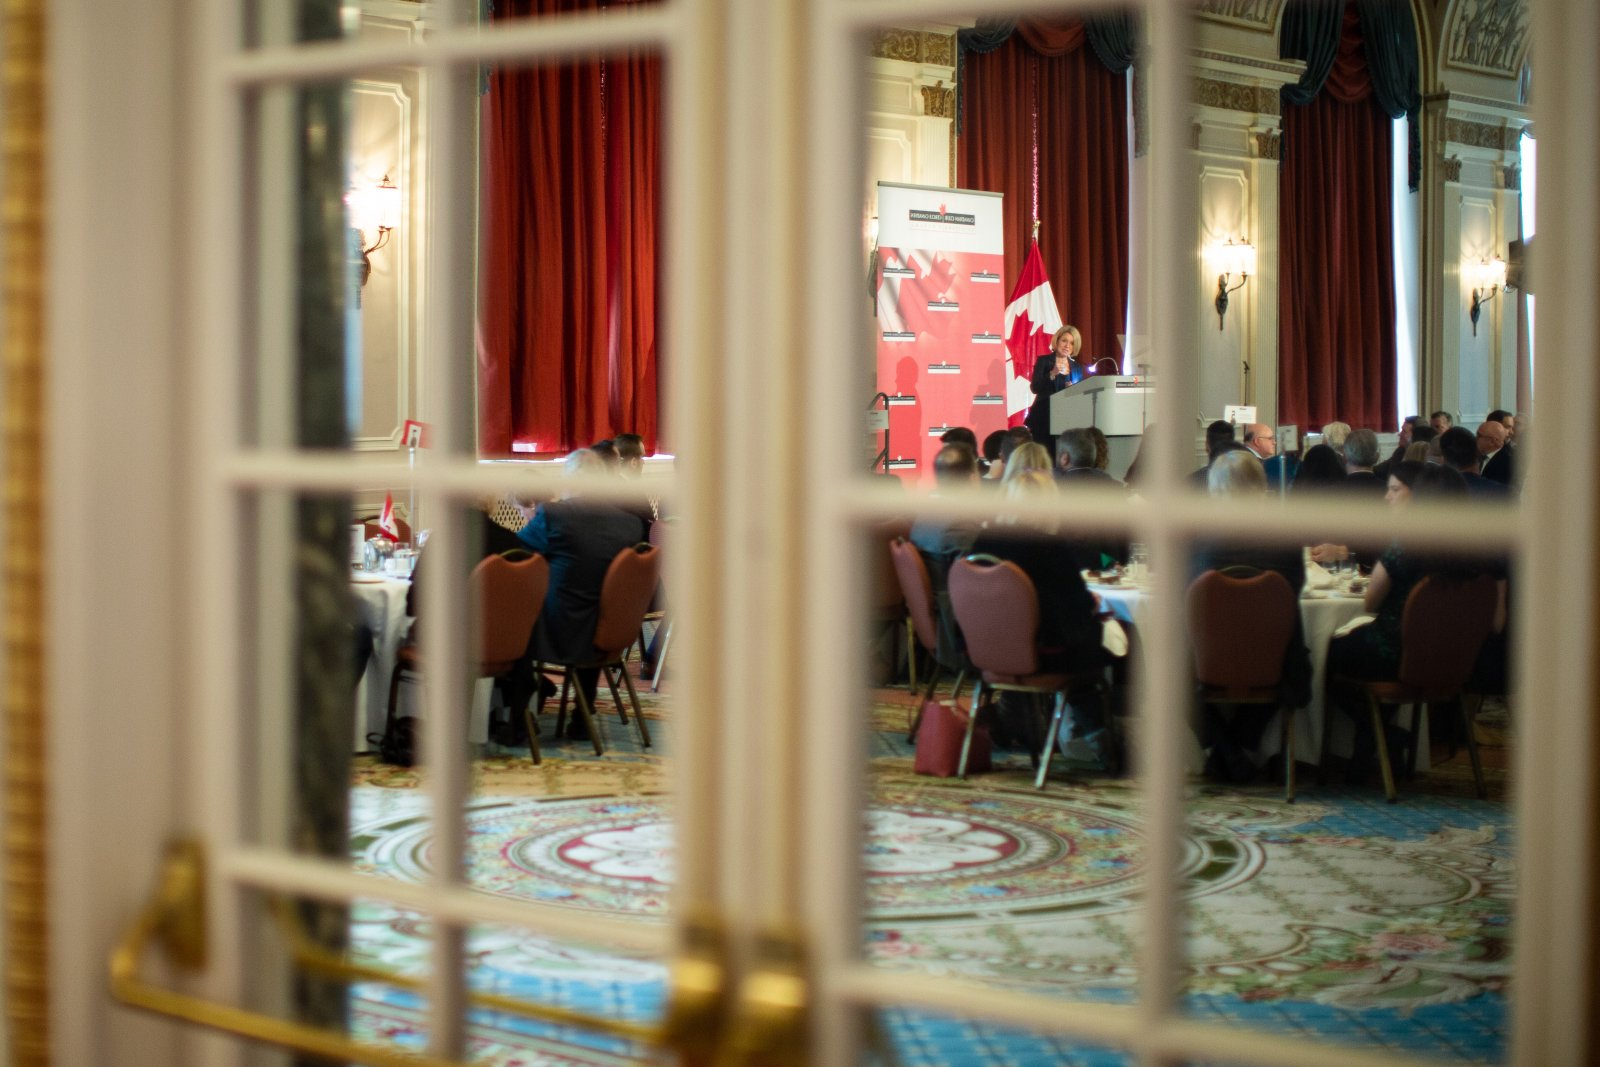 Alberta Premier Rachel Notley addresses the Canadian Club of Ottawa at the Chateau Laurier on Nov. 28, 2018. Photo by Alex Tétreault